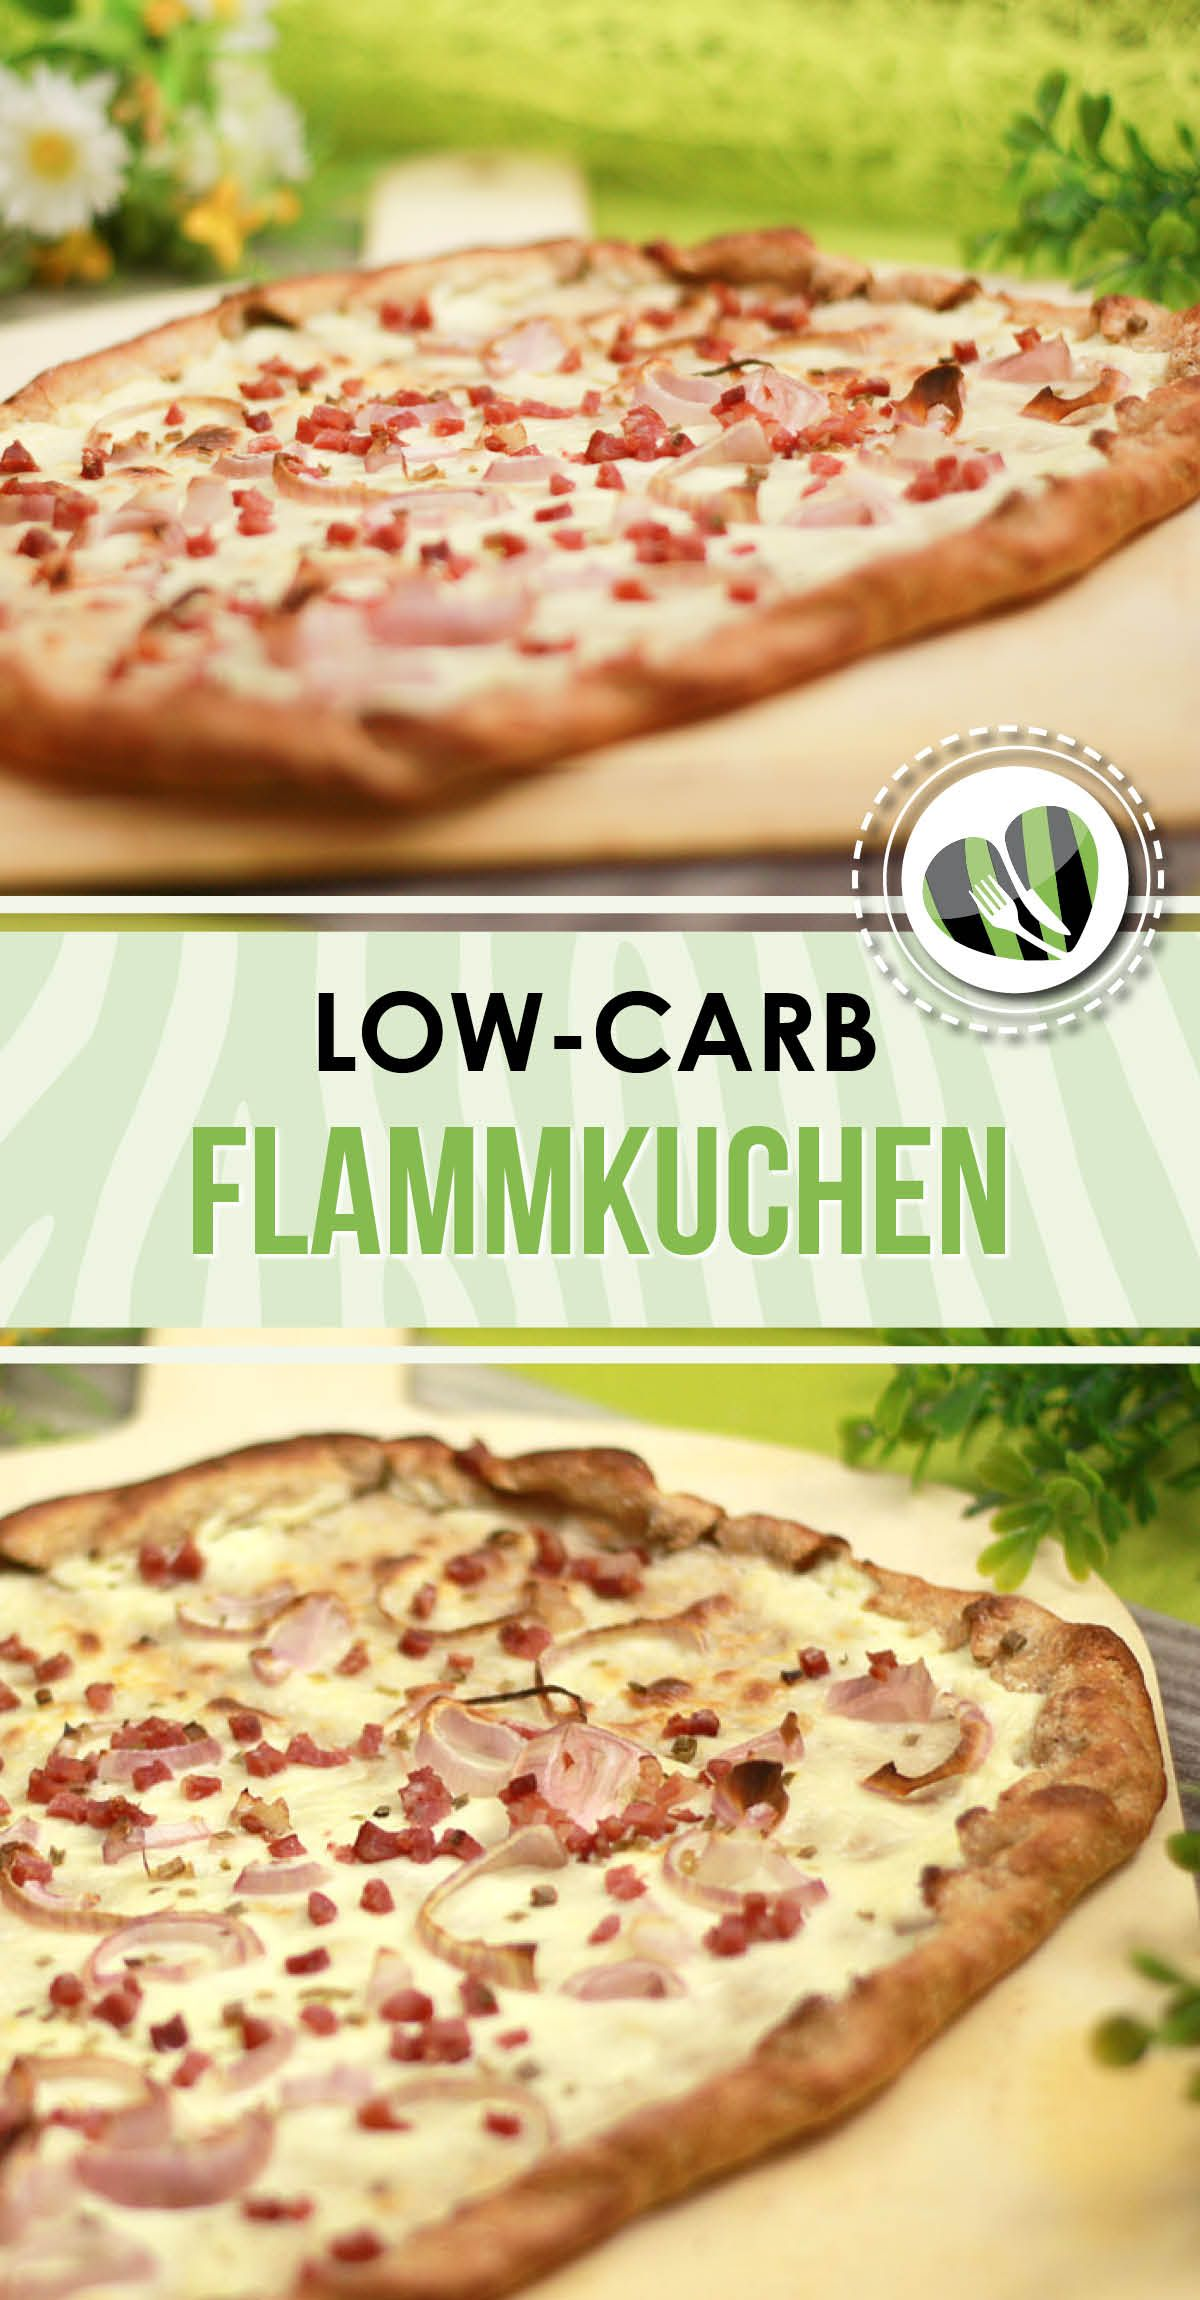 flammkuchen nach els sser art low carb und super lecker. Black Bedroom Furniture Sets. Home Design Ideas